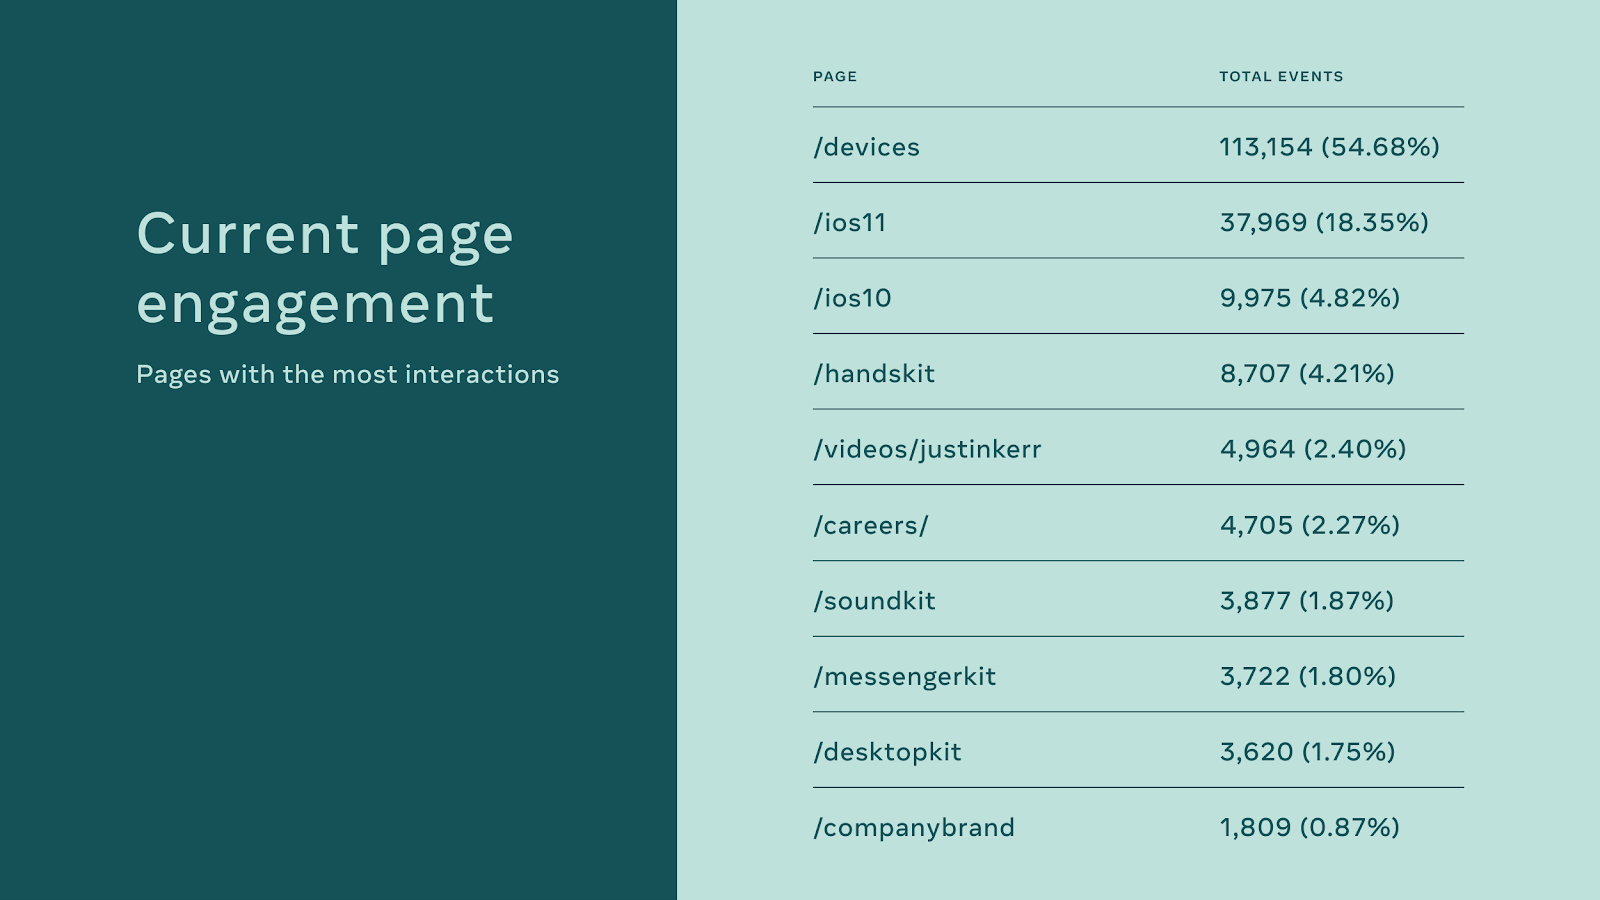 """A slide from an internal presentation titled """"current page engagement"""" shows that the top-visited page is the devices page."""